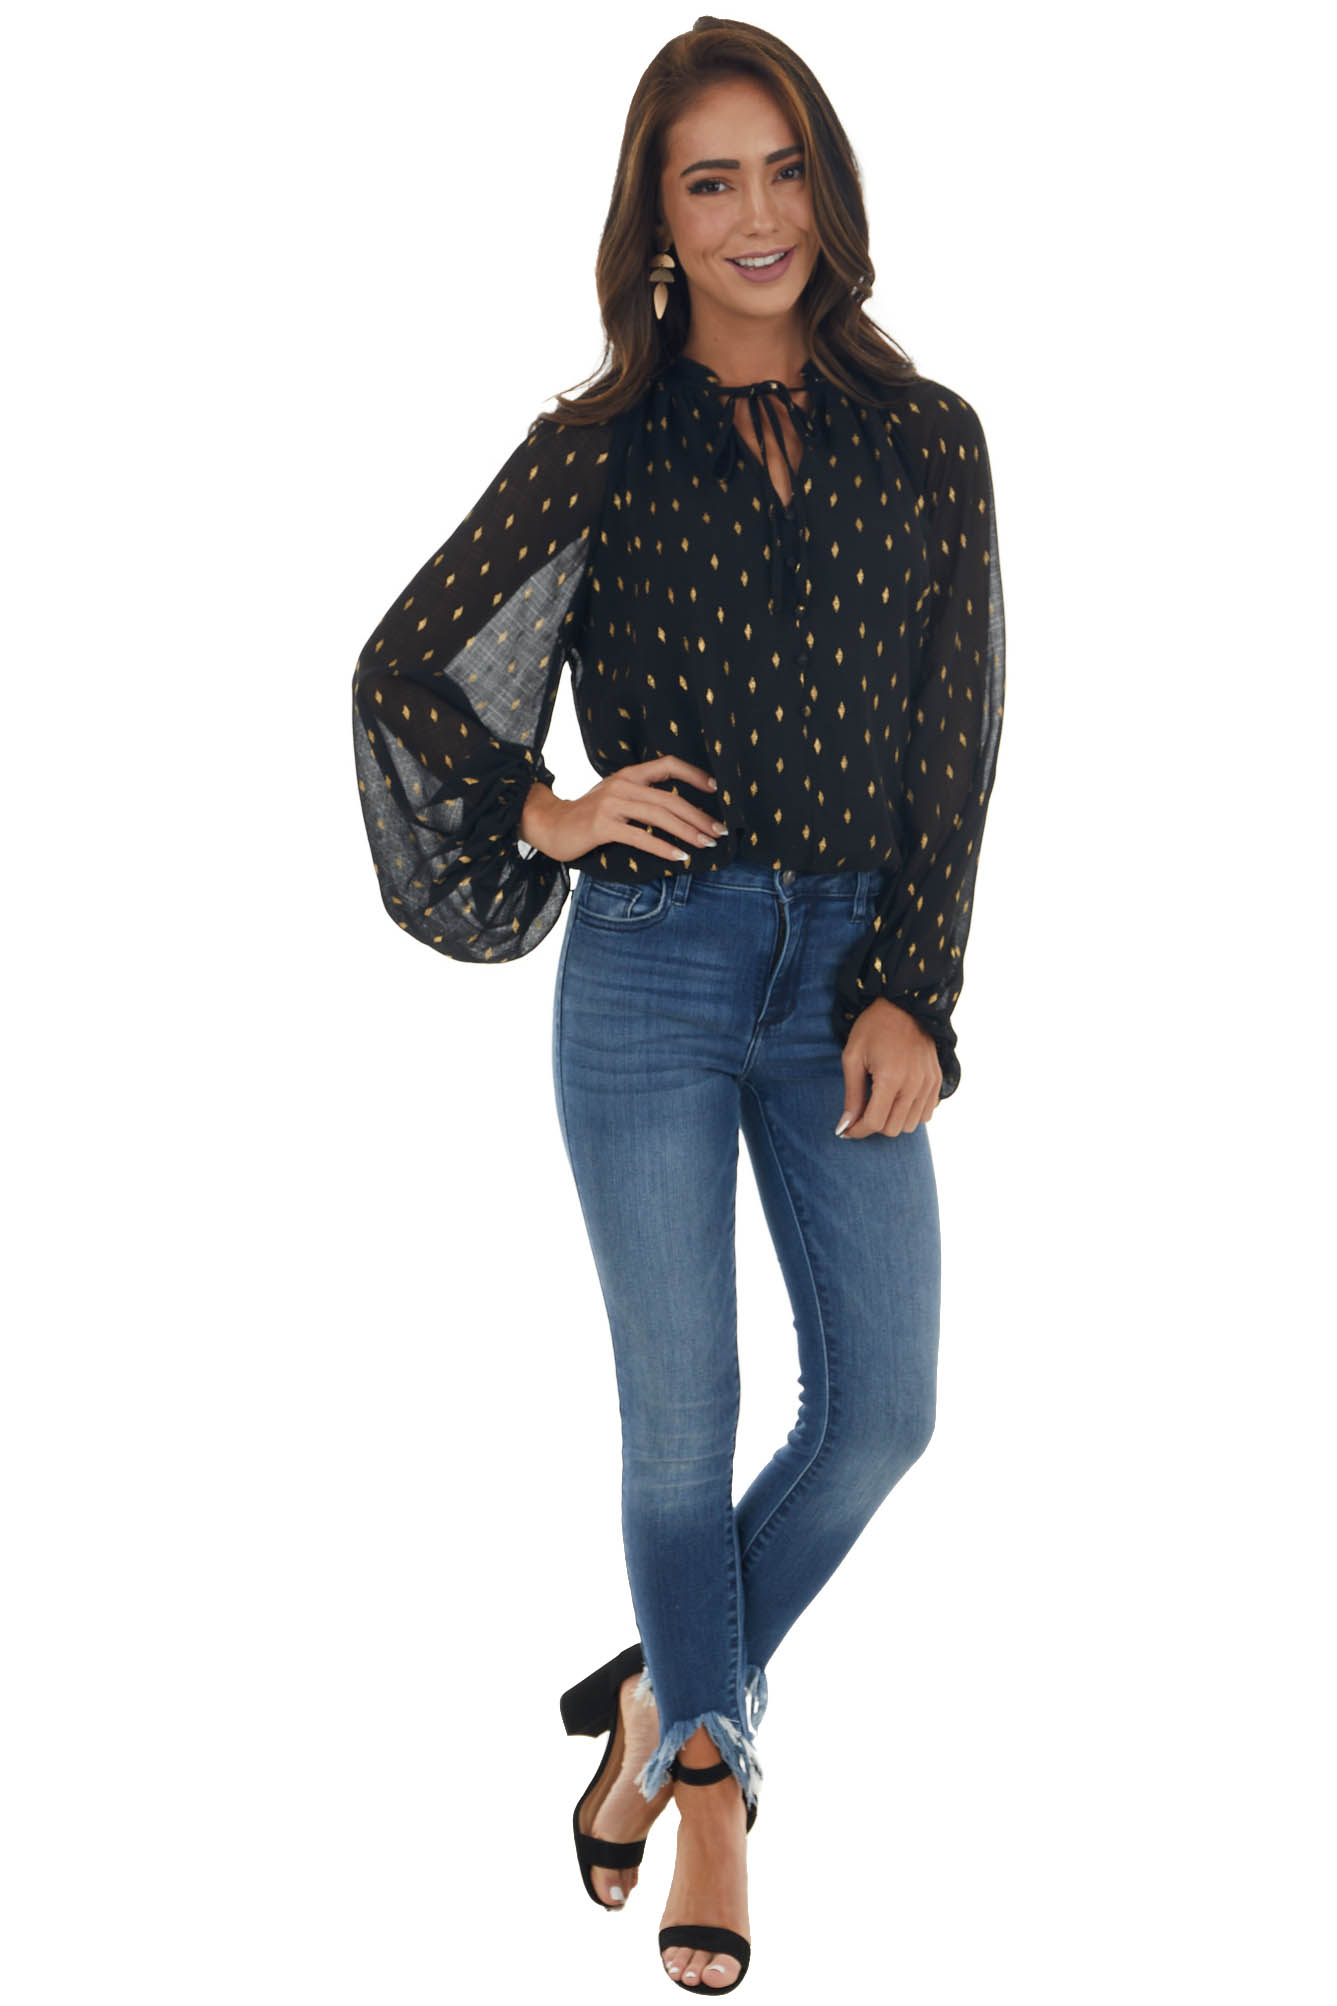 Black and Gold Long Sleeve Mock Neck Blouse